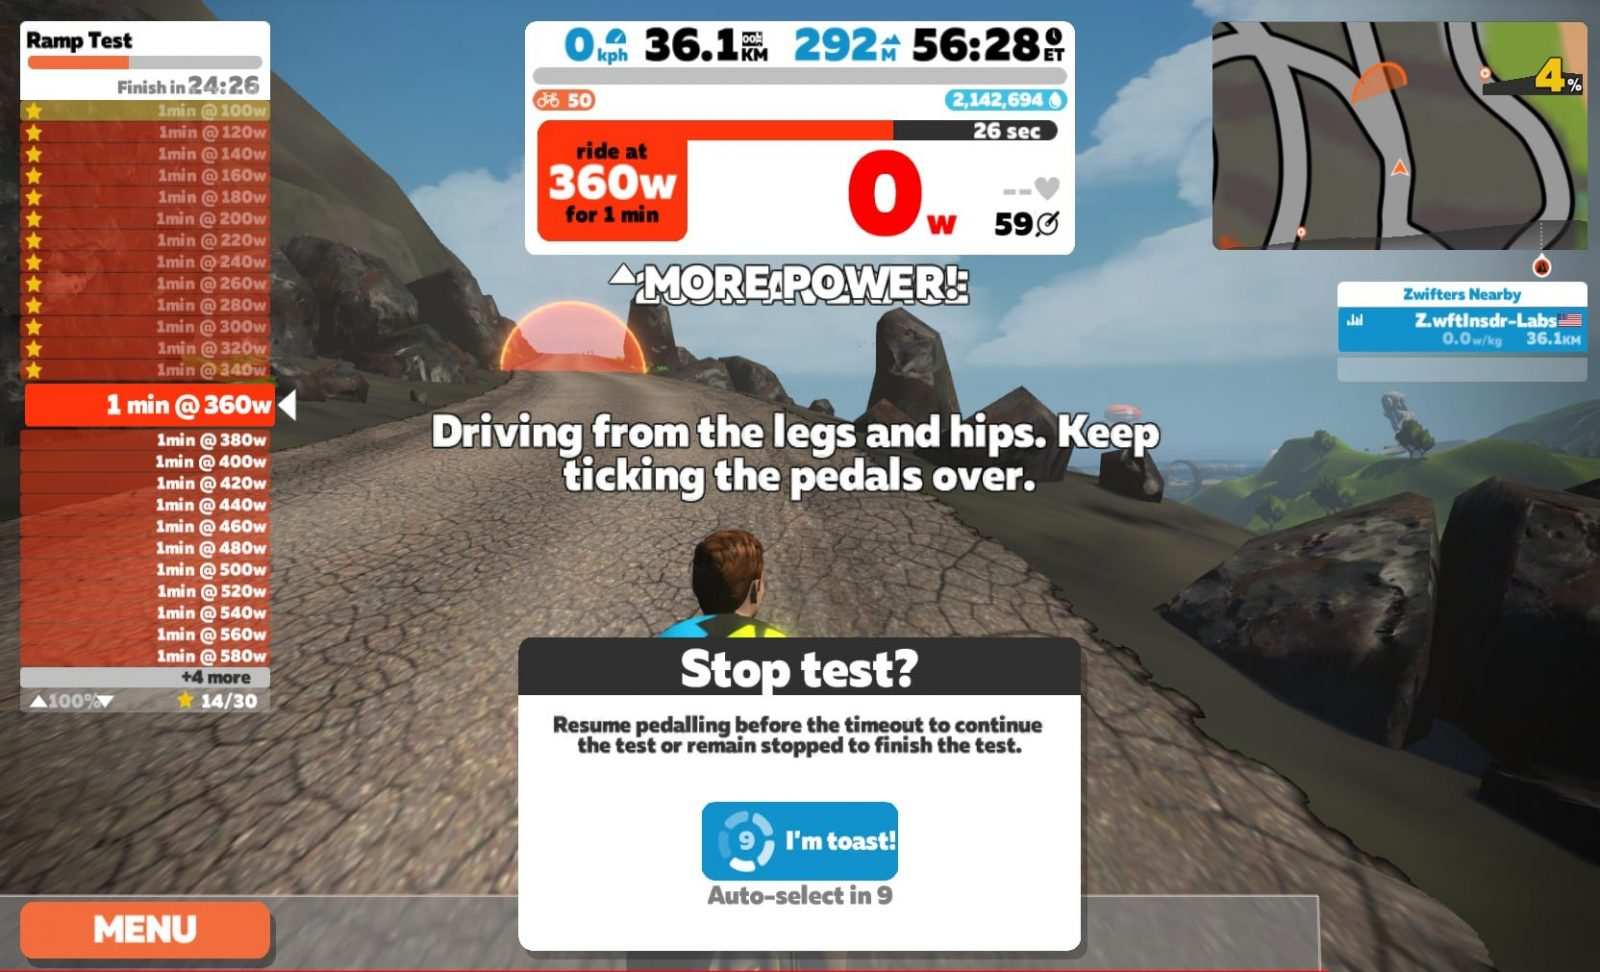 Determine Your FTP with Zwift's New Ramp Test | Zwift Insider